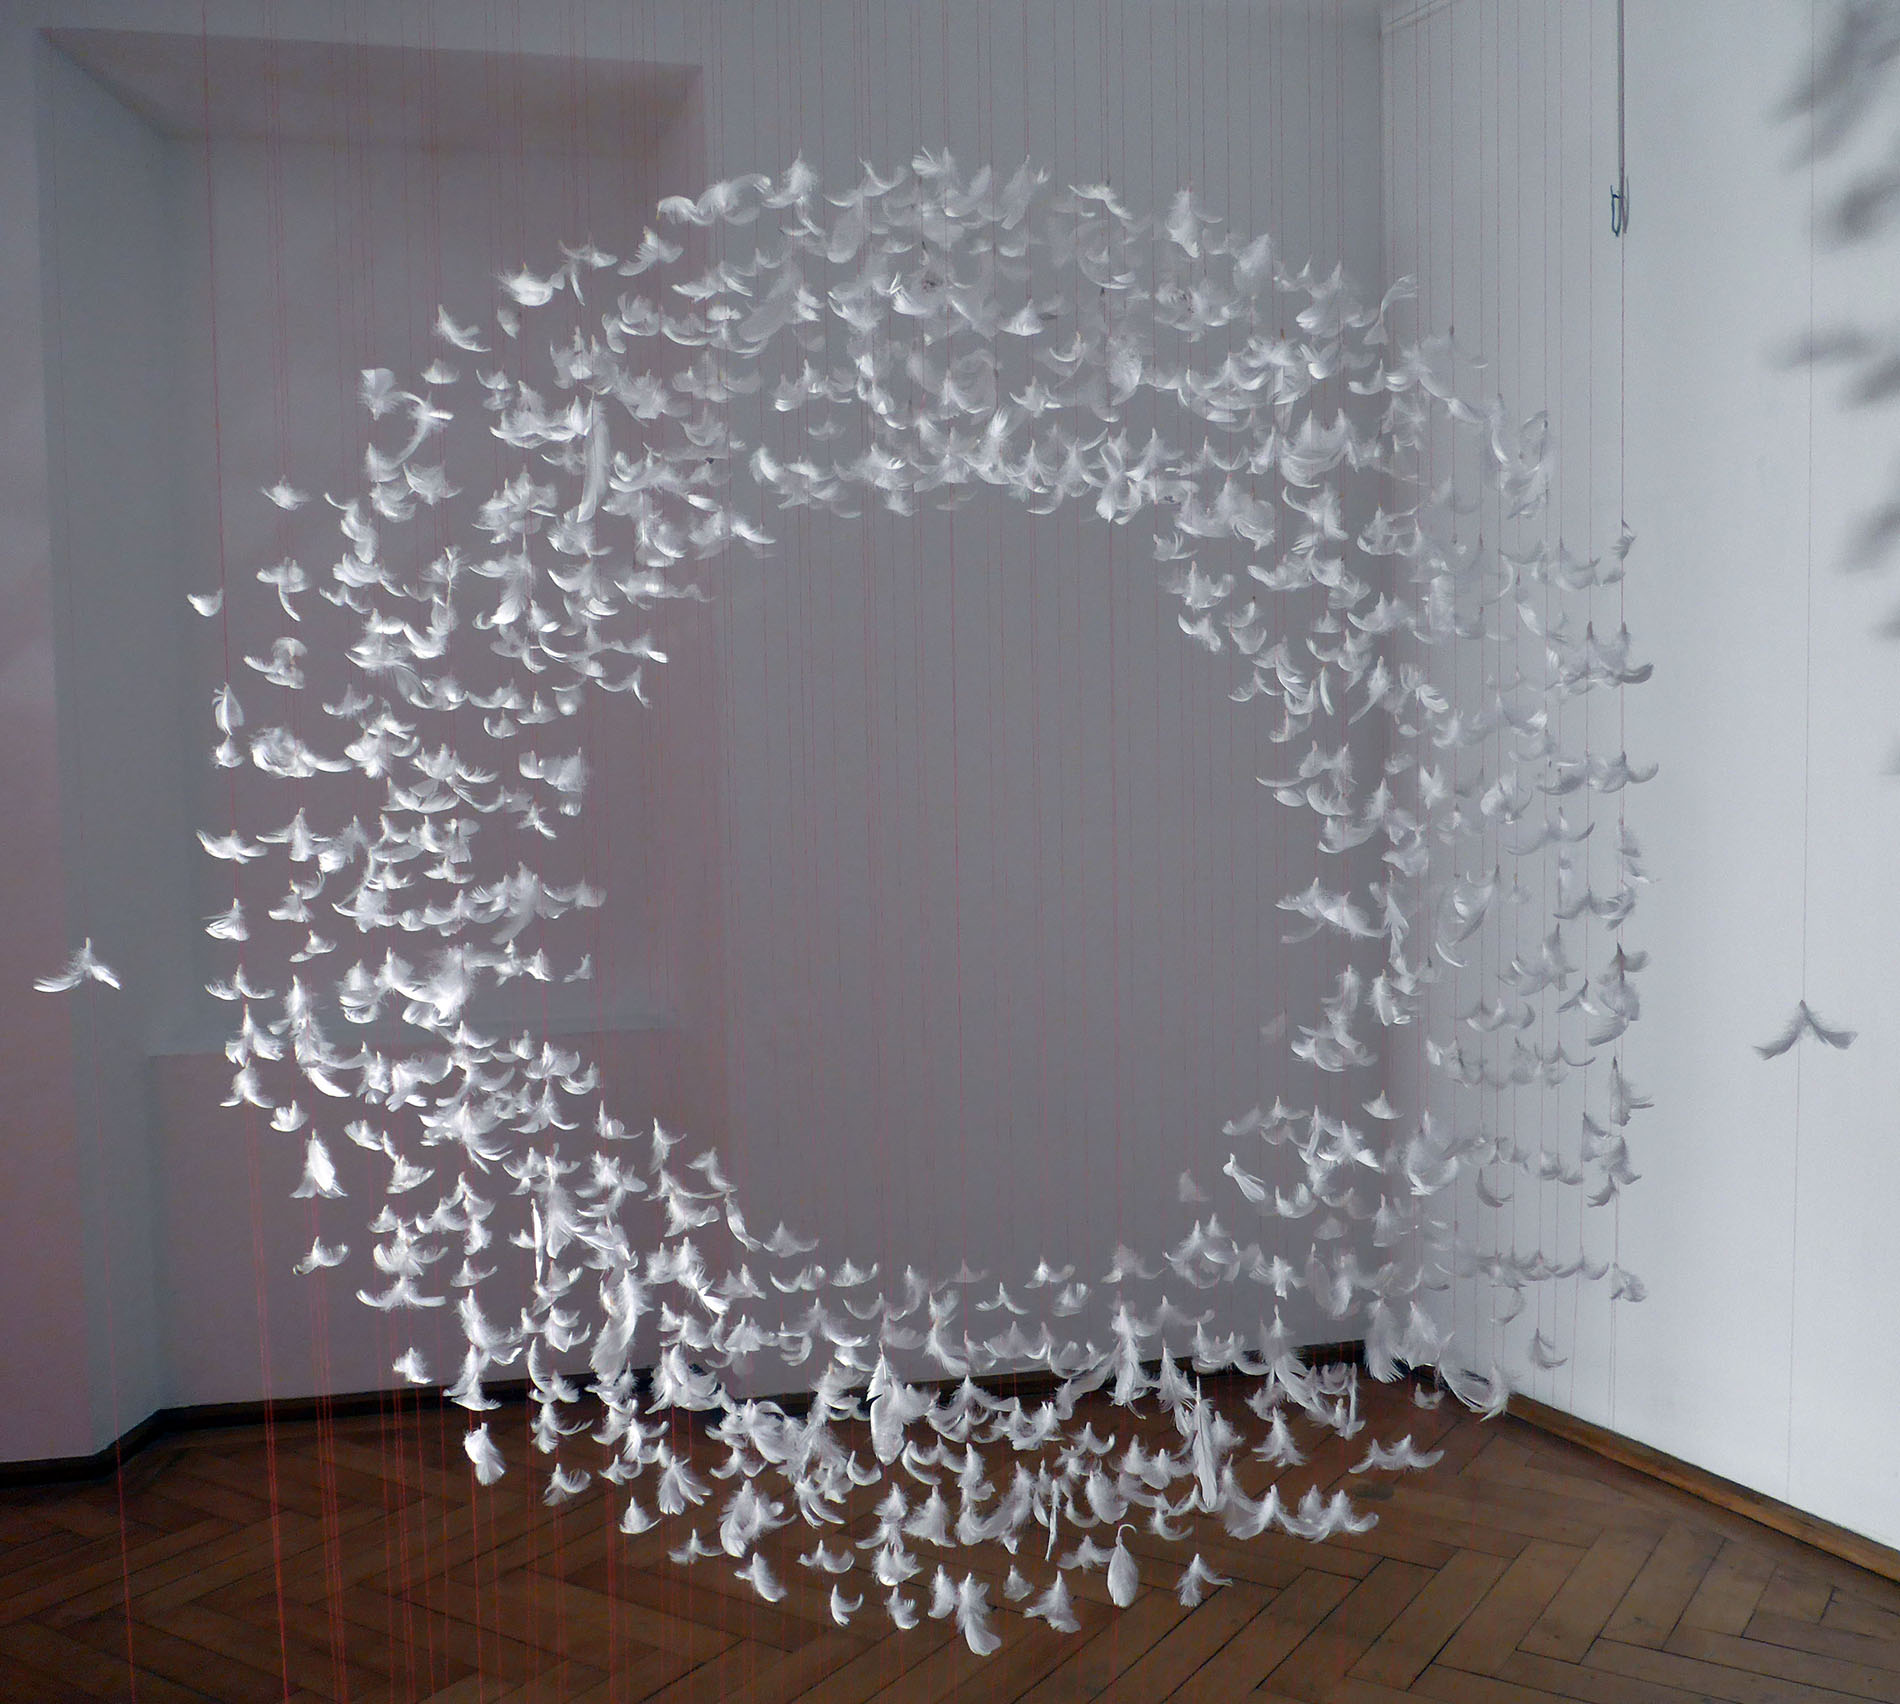 Isa Barbier, sans titre, 2019, Installation mit Möven- und Gänsefedern, variable Dimension